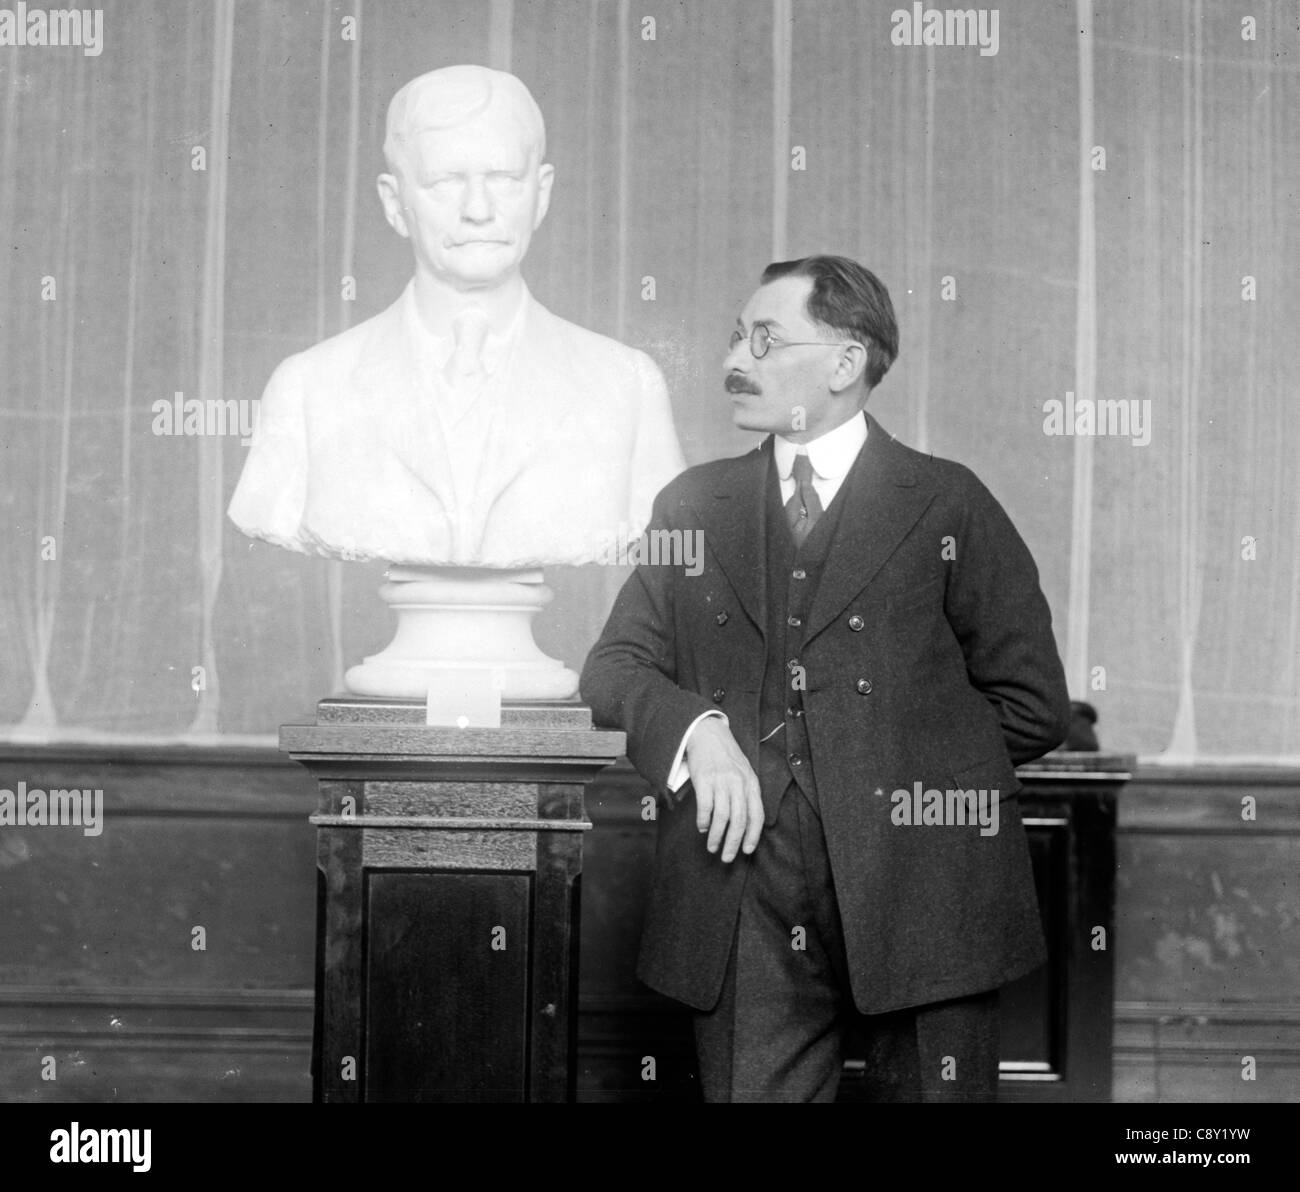 Moses Wainer Dykaar & Bust of Marshall Stock Photo